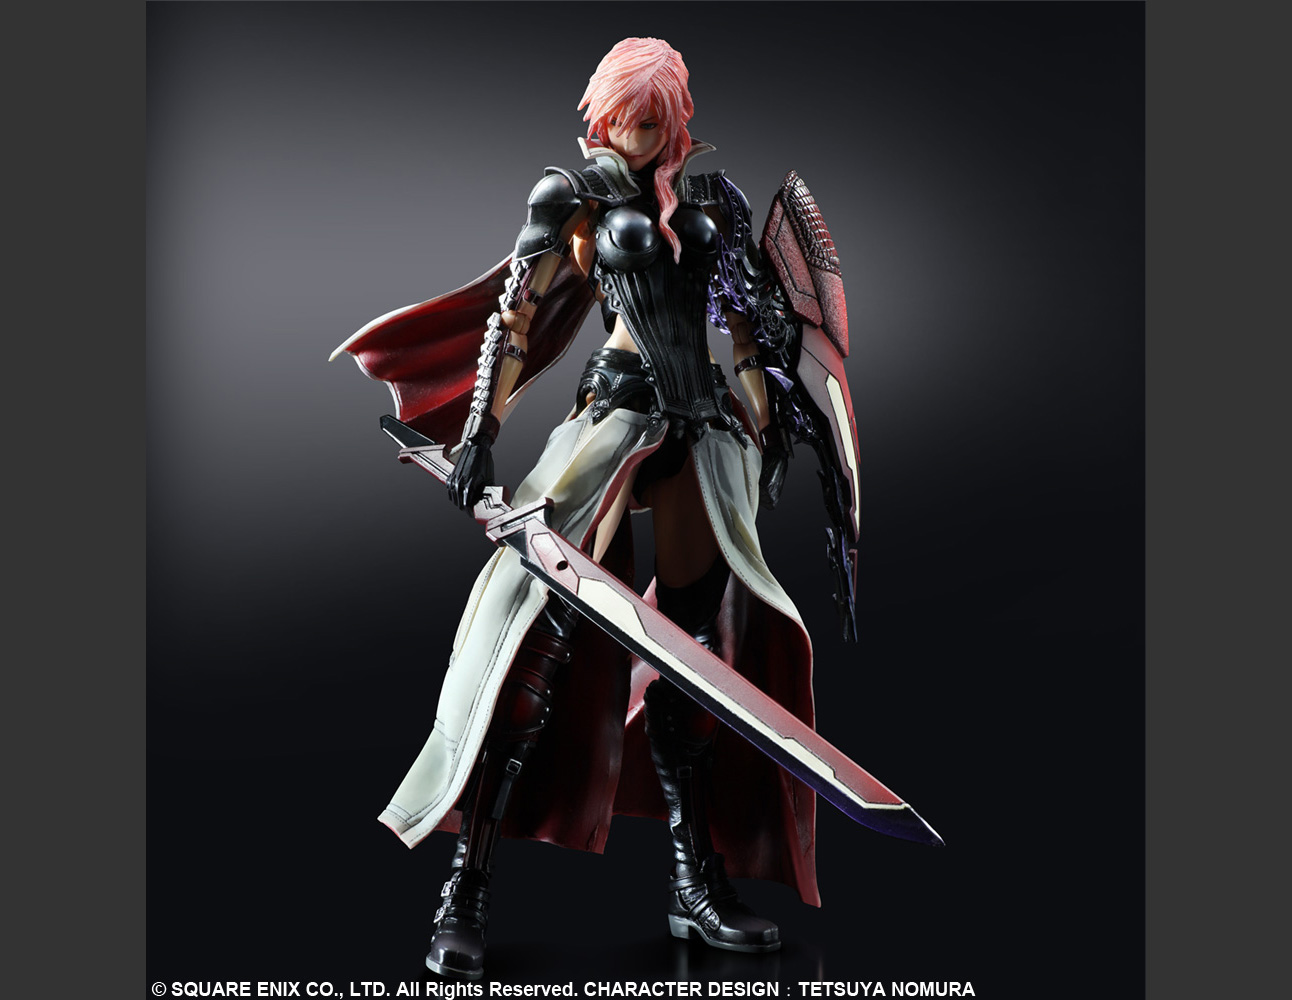 LIGHTNING RETURNS: FINAL FANTASY XIII PLAY ARTS -KAI- LIGHTNING